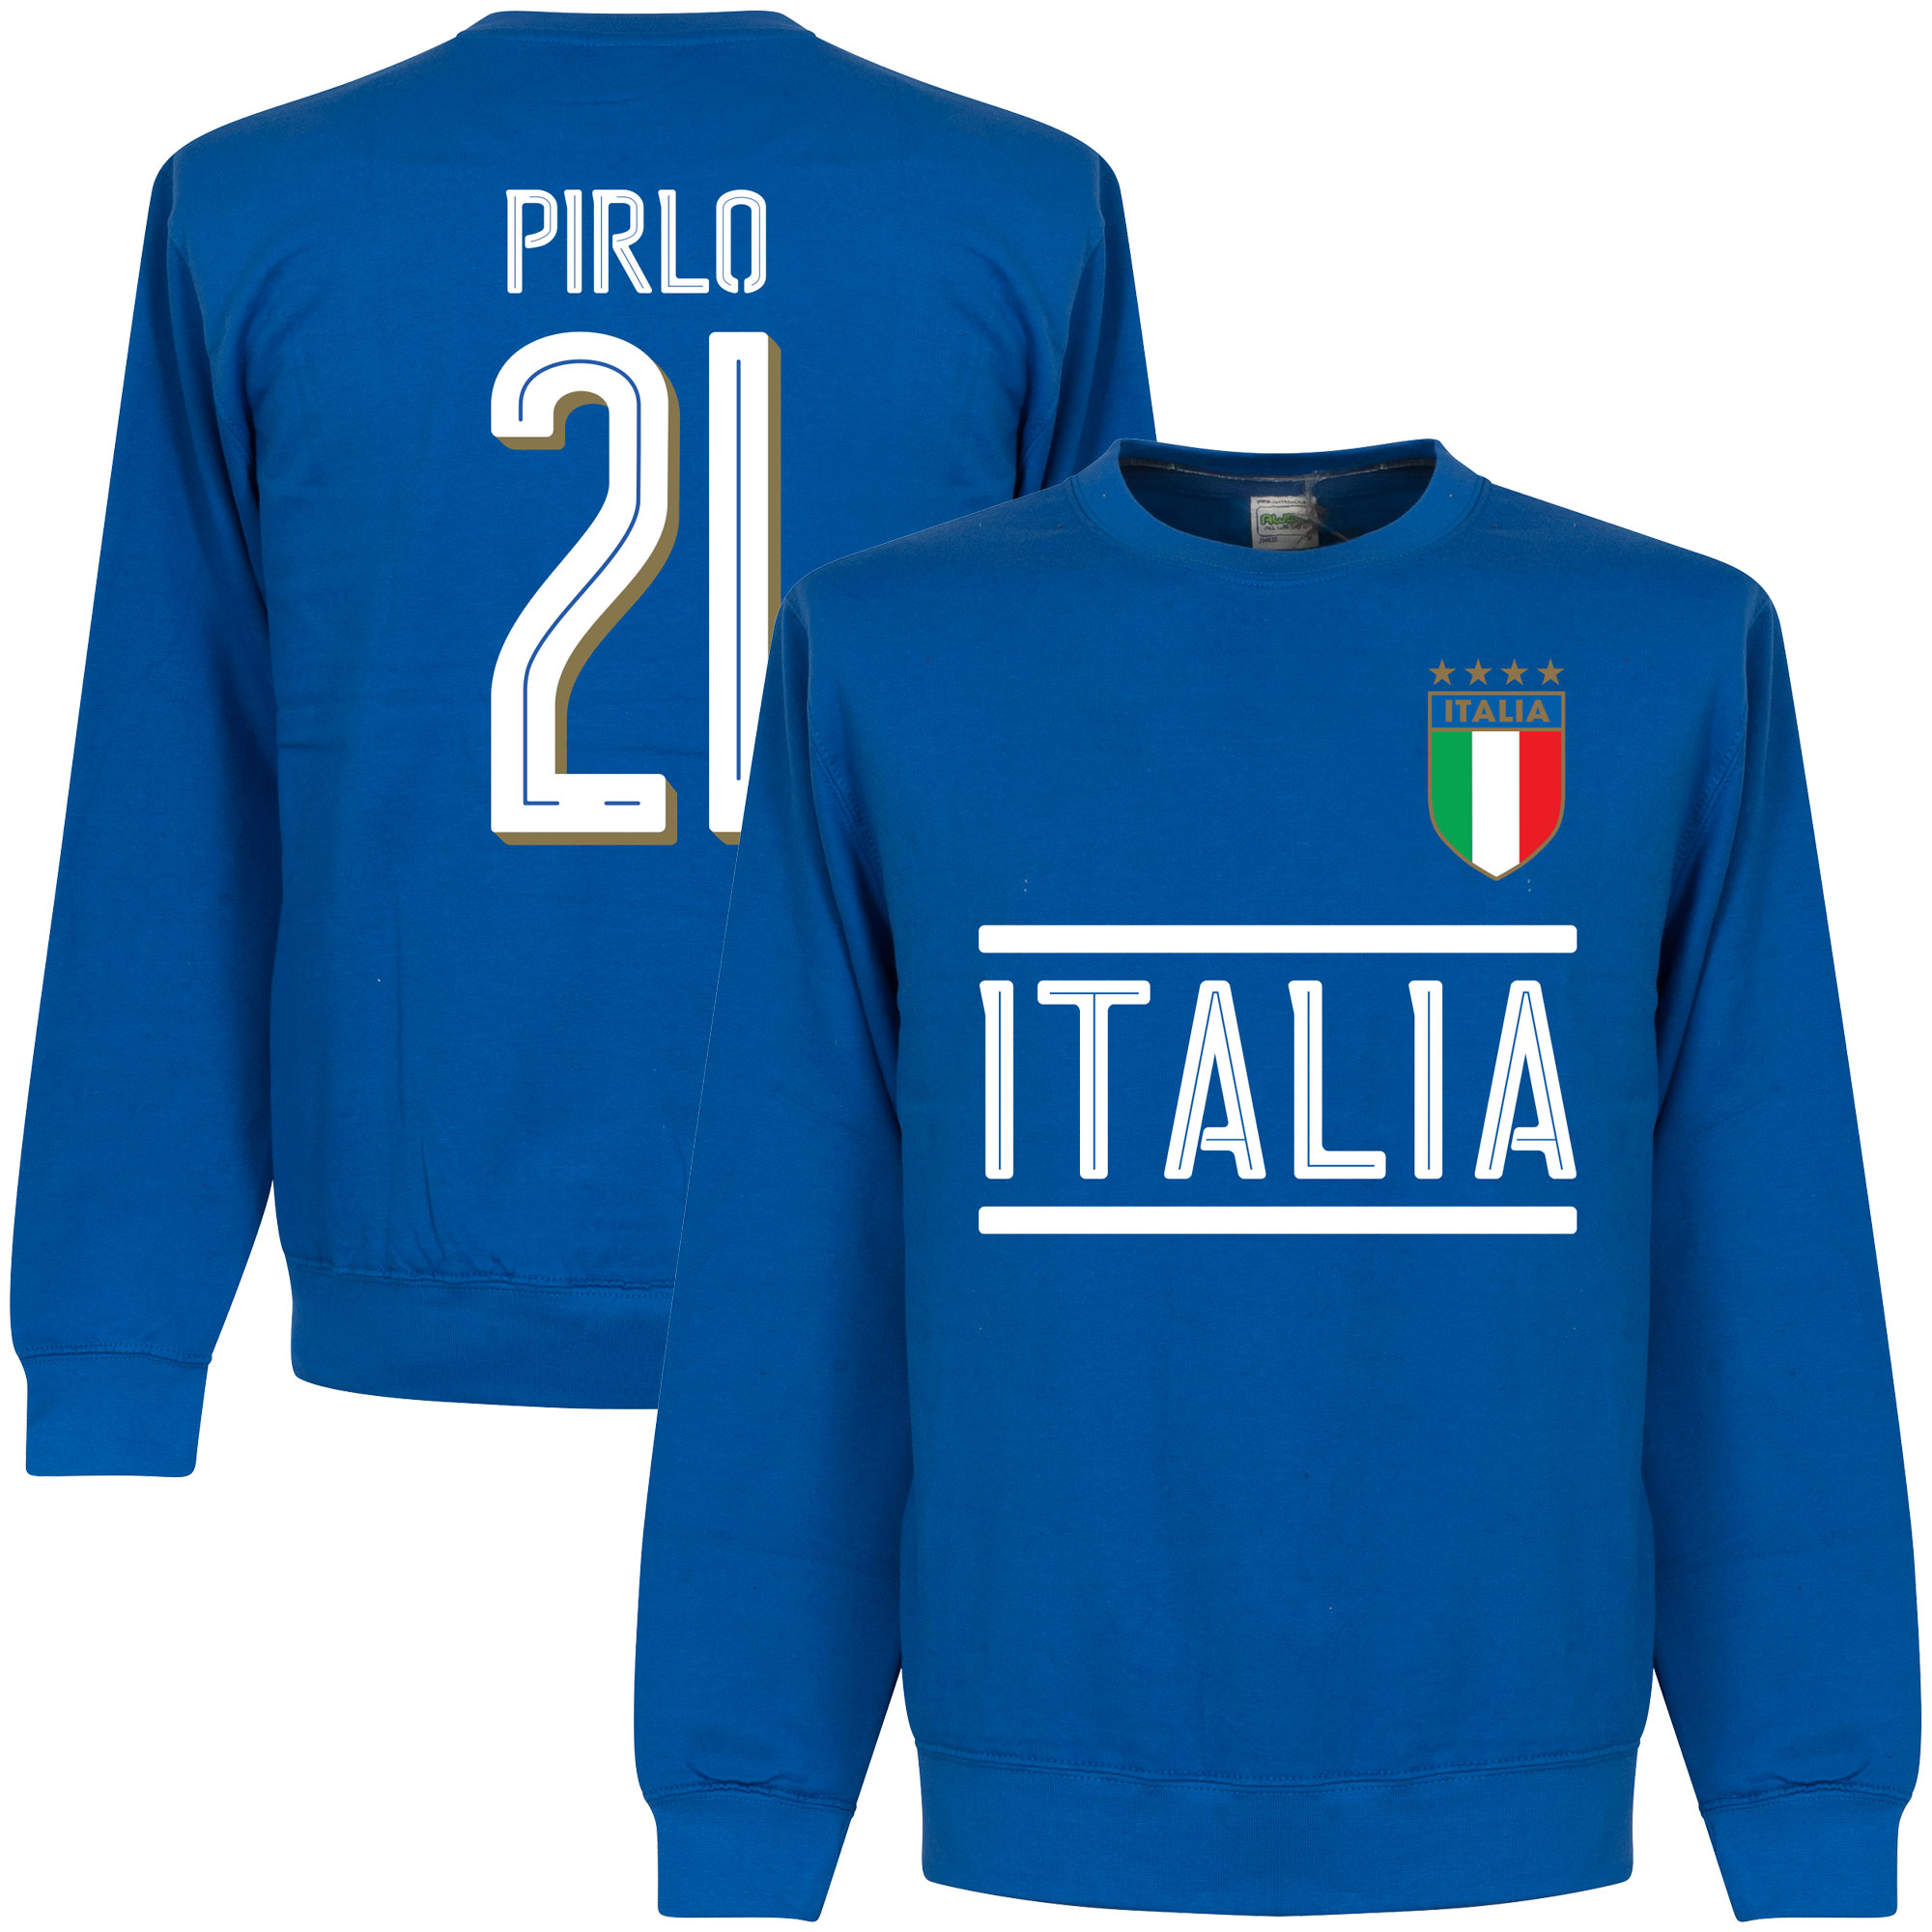 Italy Pirlo Team Sweatshirt - Royal - XXXL